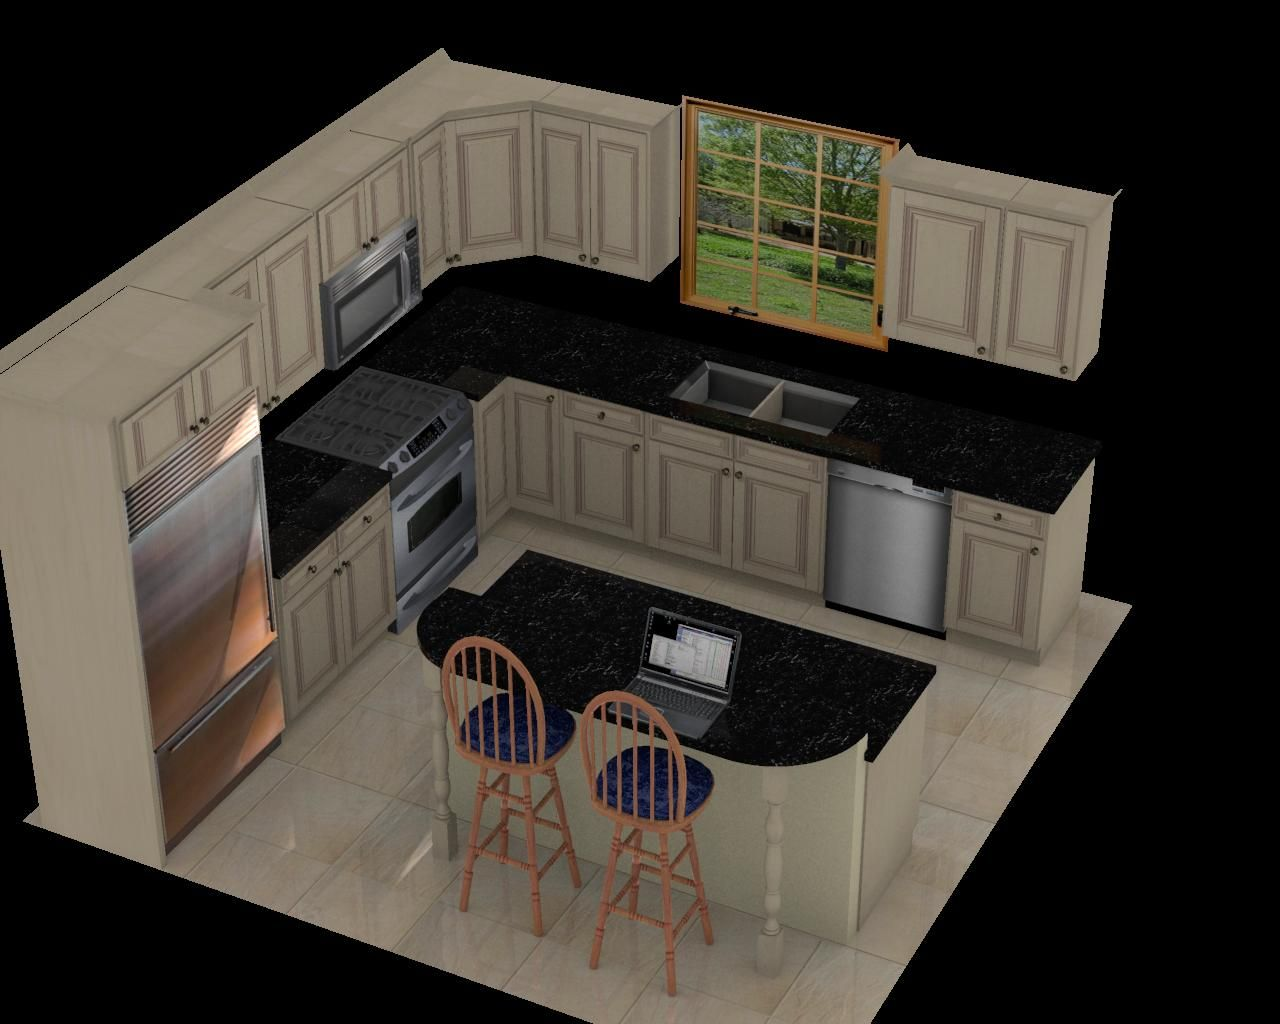 Amazing Luxury 12x12 Kitchen Layout With Island 51 For With 12x12 Kitchen Layout  With Island